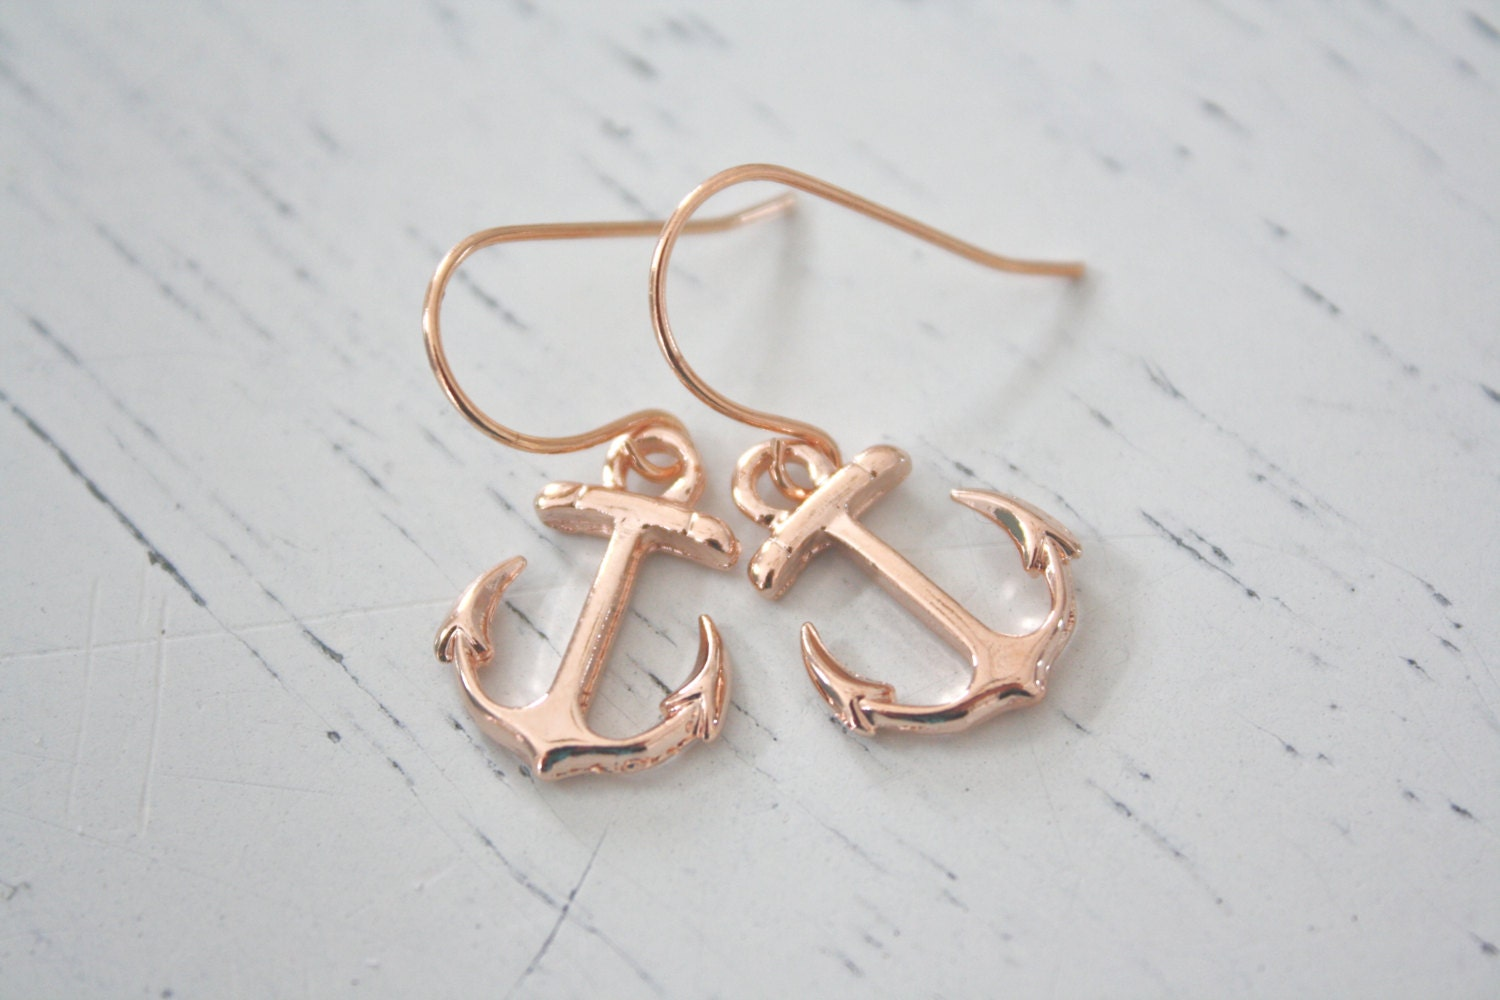 anchor dangle earrings rose gold earrings rose gold jewelry. Black Bedroom Furniture Sets. Home Design Ideas